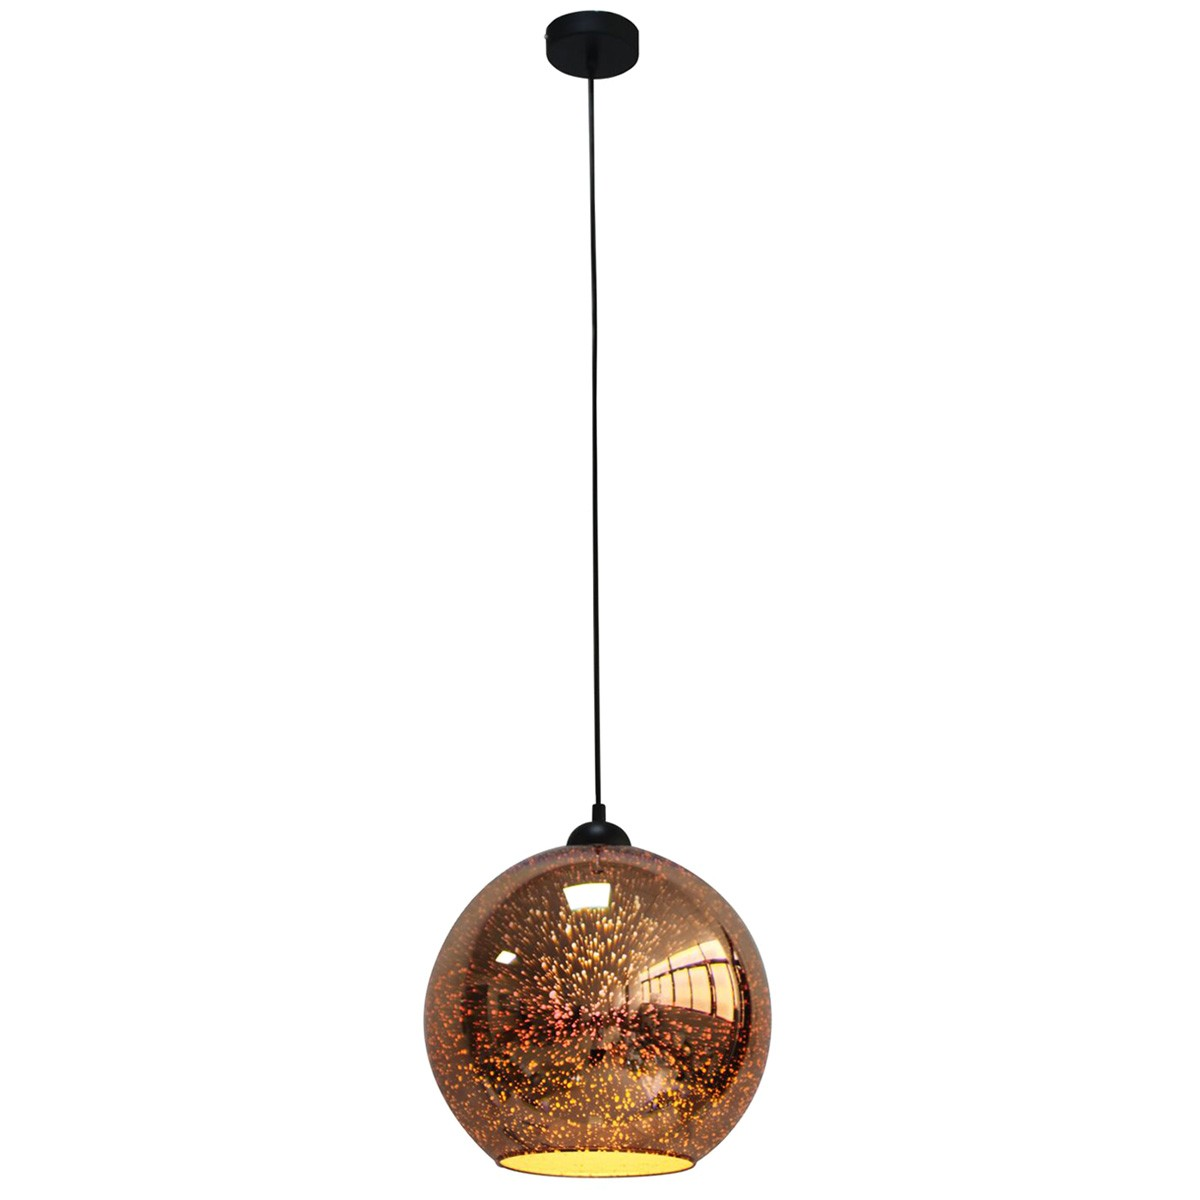 Javarone Glass Pendant Light, 30cm, Copper